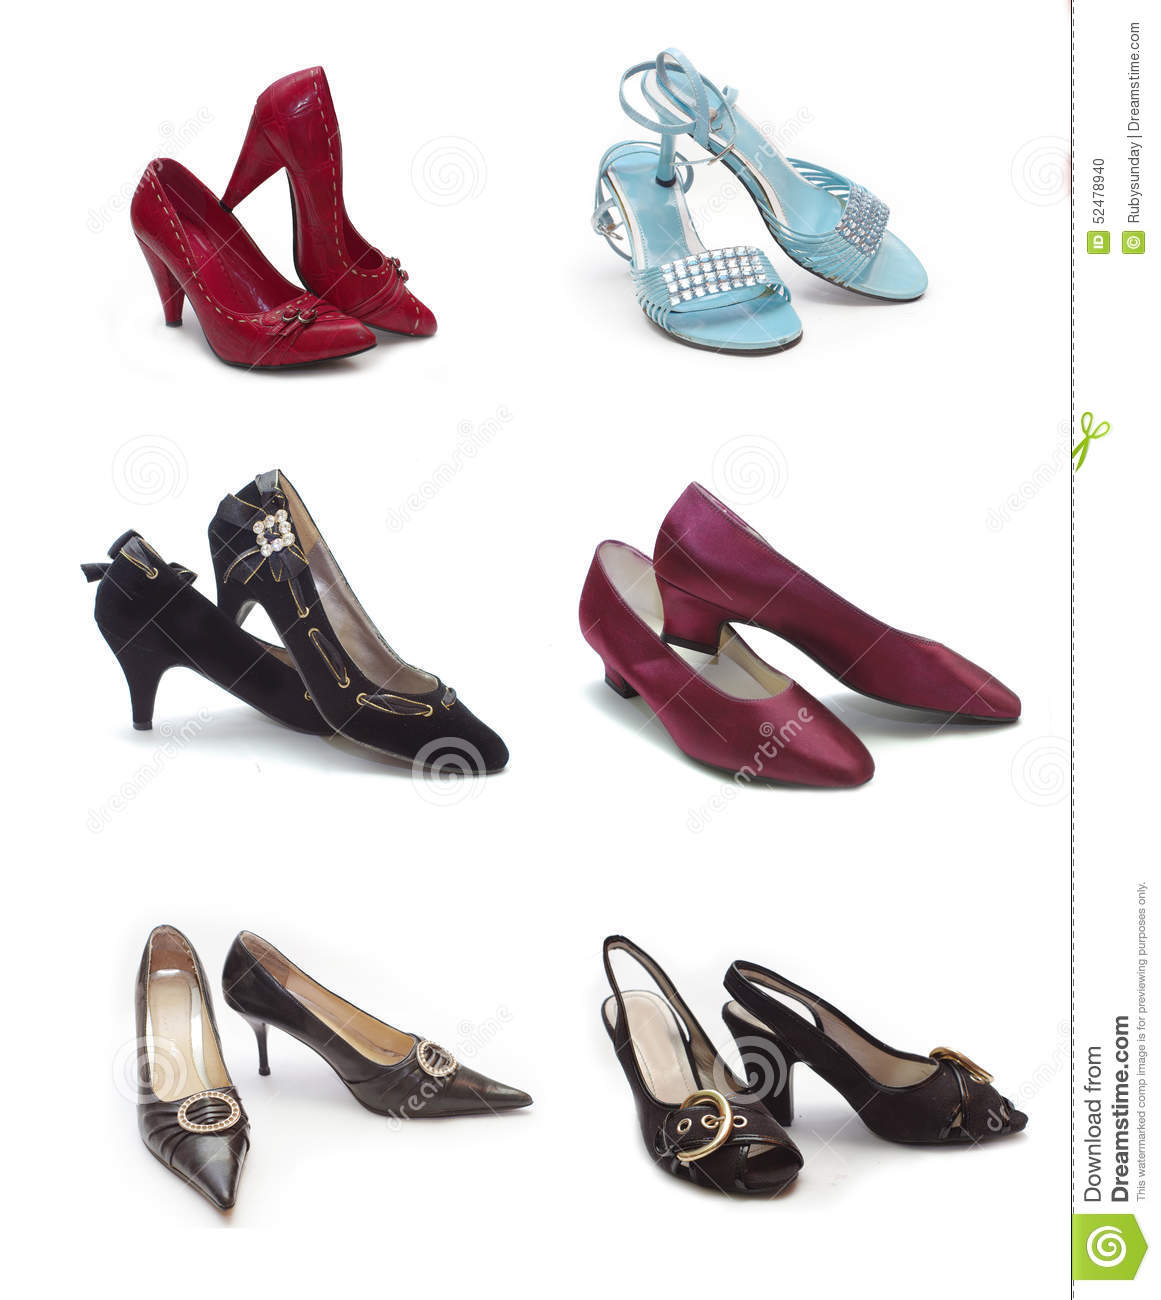 ef187598a34ded Different Types Of Woman Shoes Stock Photo - Image of stiletto ...